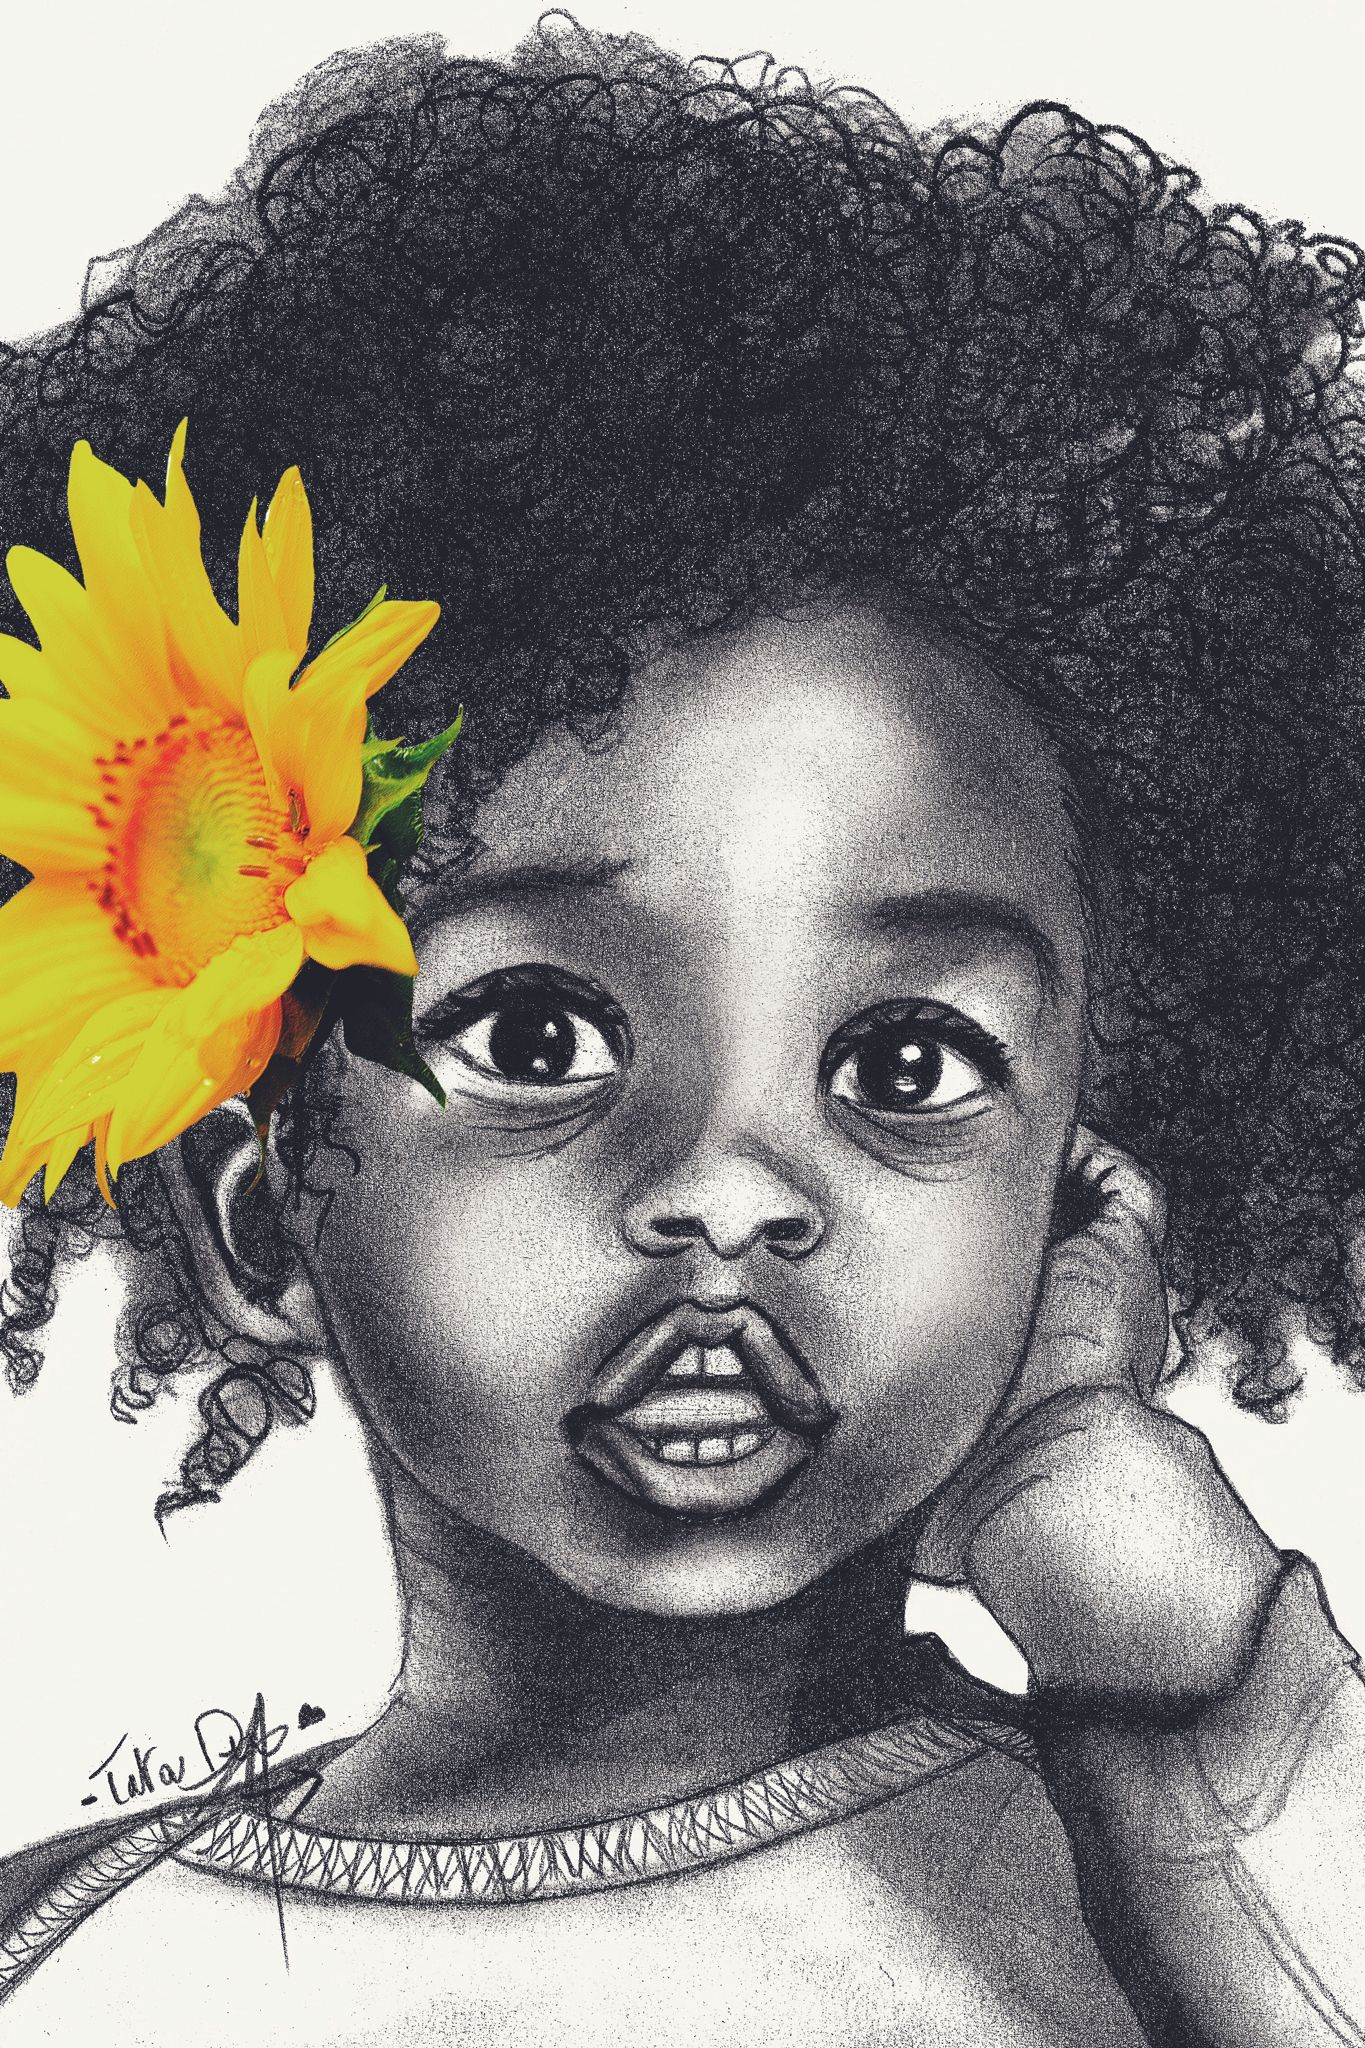 6 Art Coiffure Manom Drawing By Tatoudembele Cute Afro Baby Girl Drawings